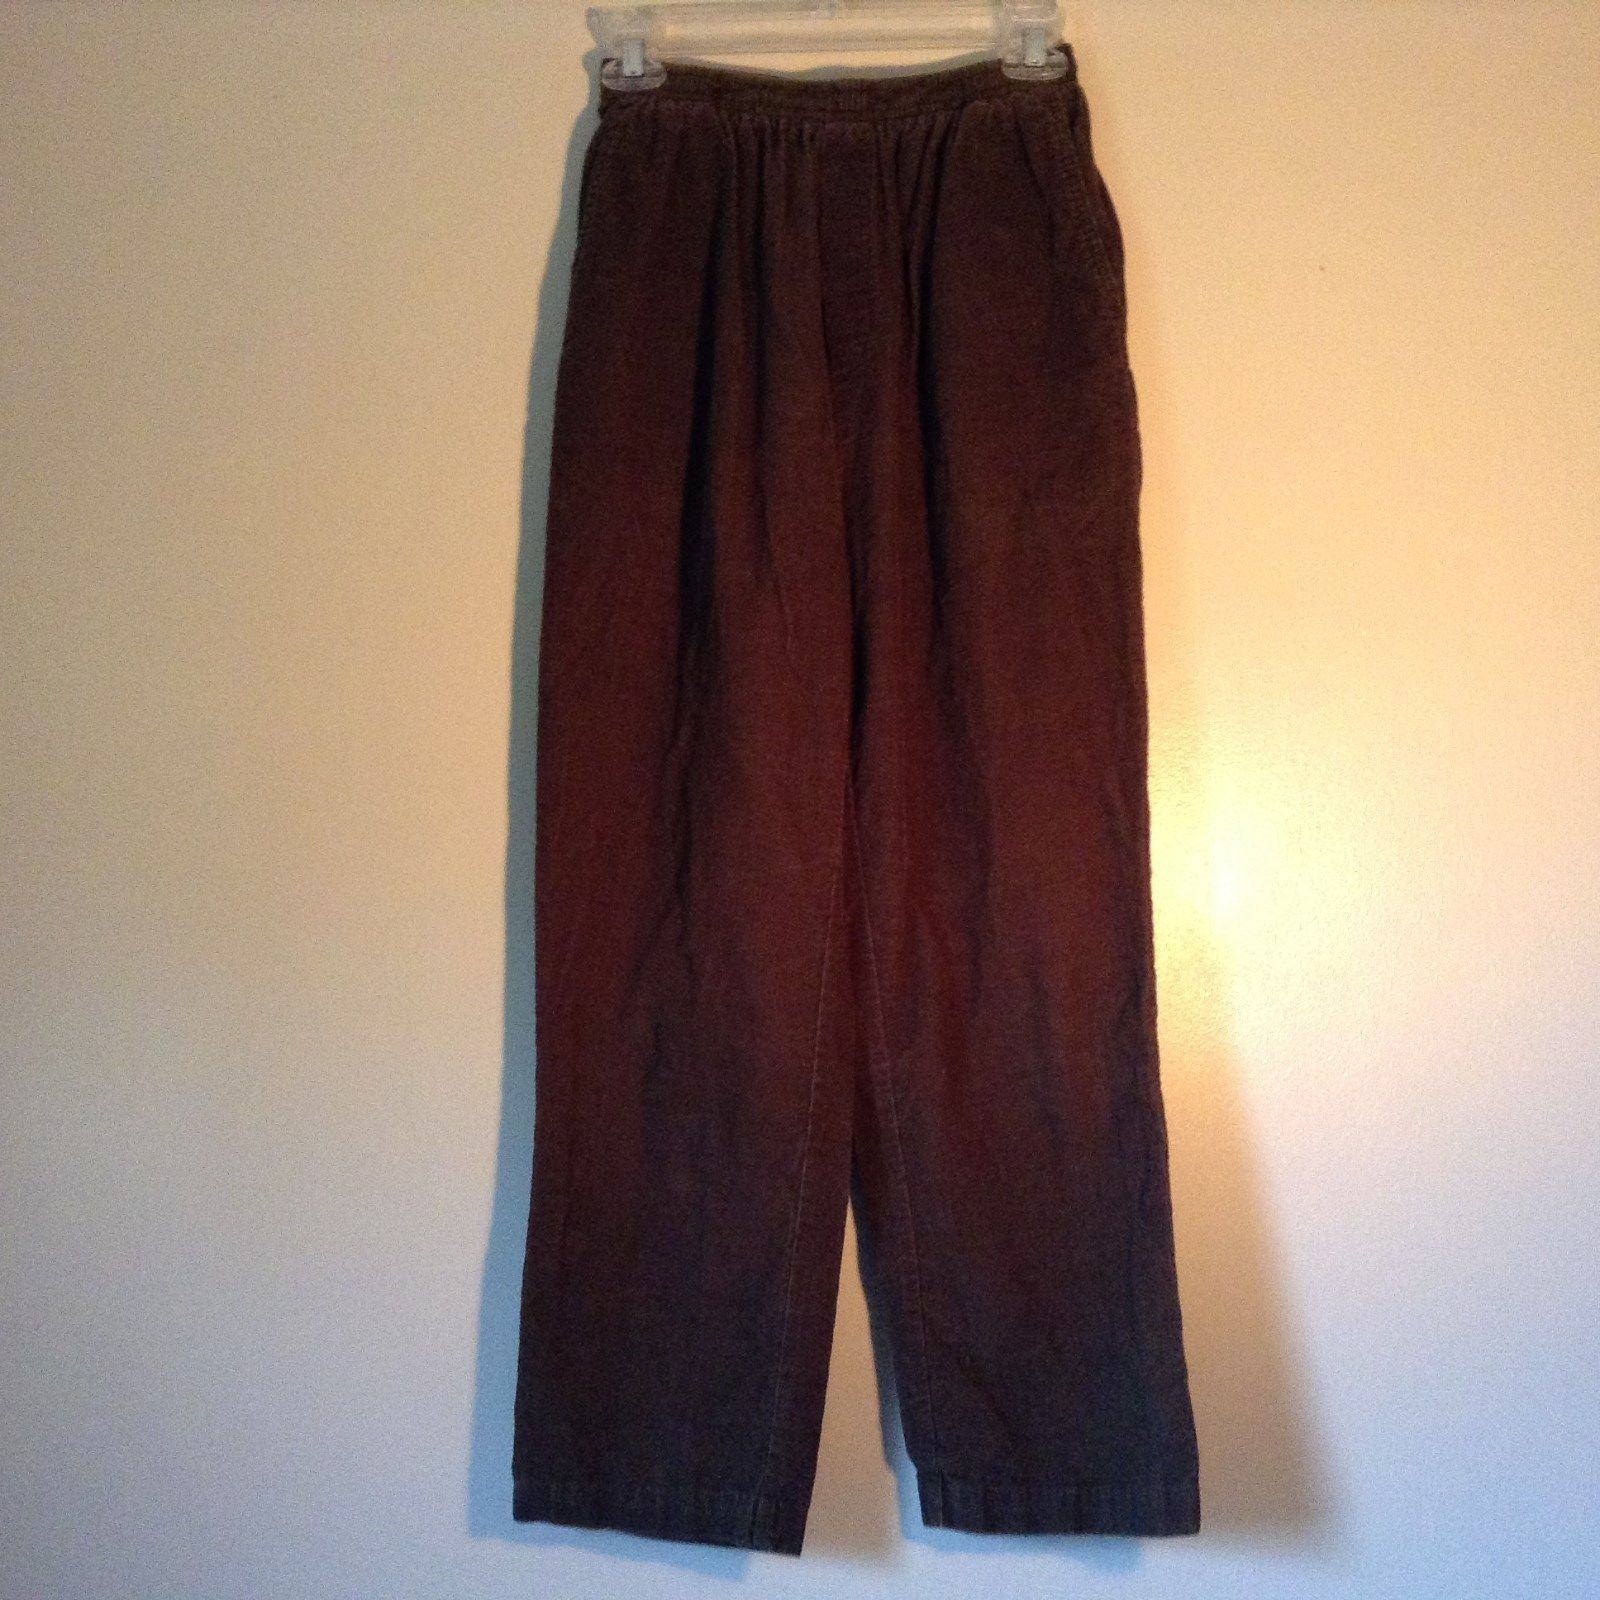 Cabin Creek Dark Green Pants 100 Percent Cotton Elastic Waistband Size 10